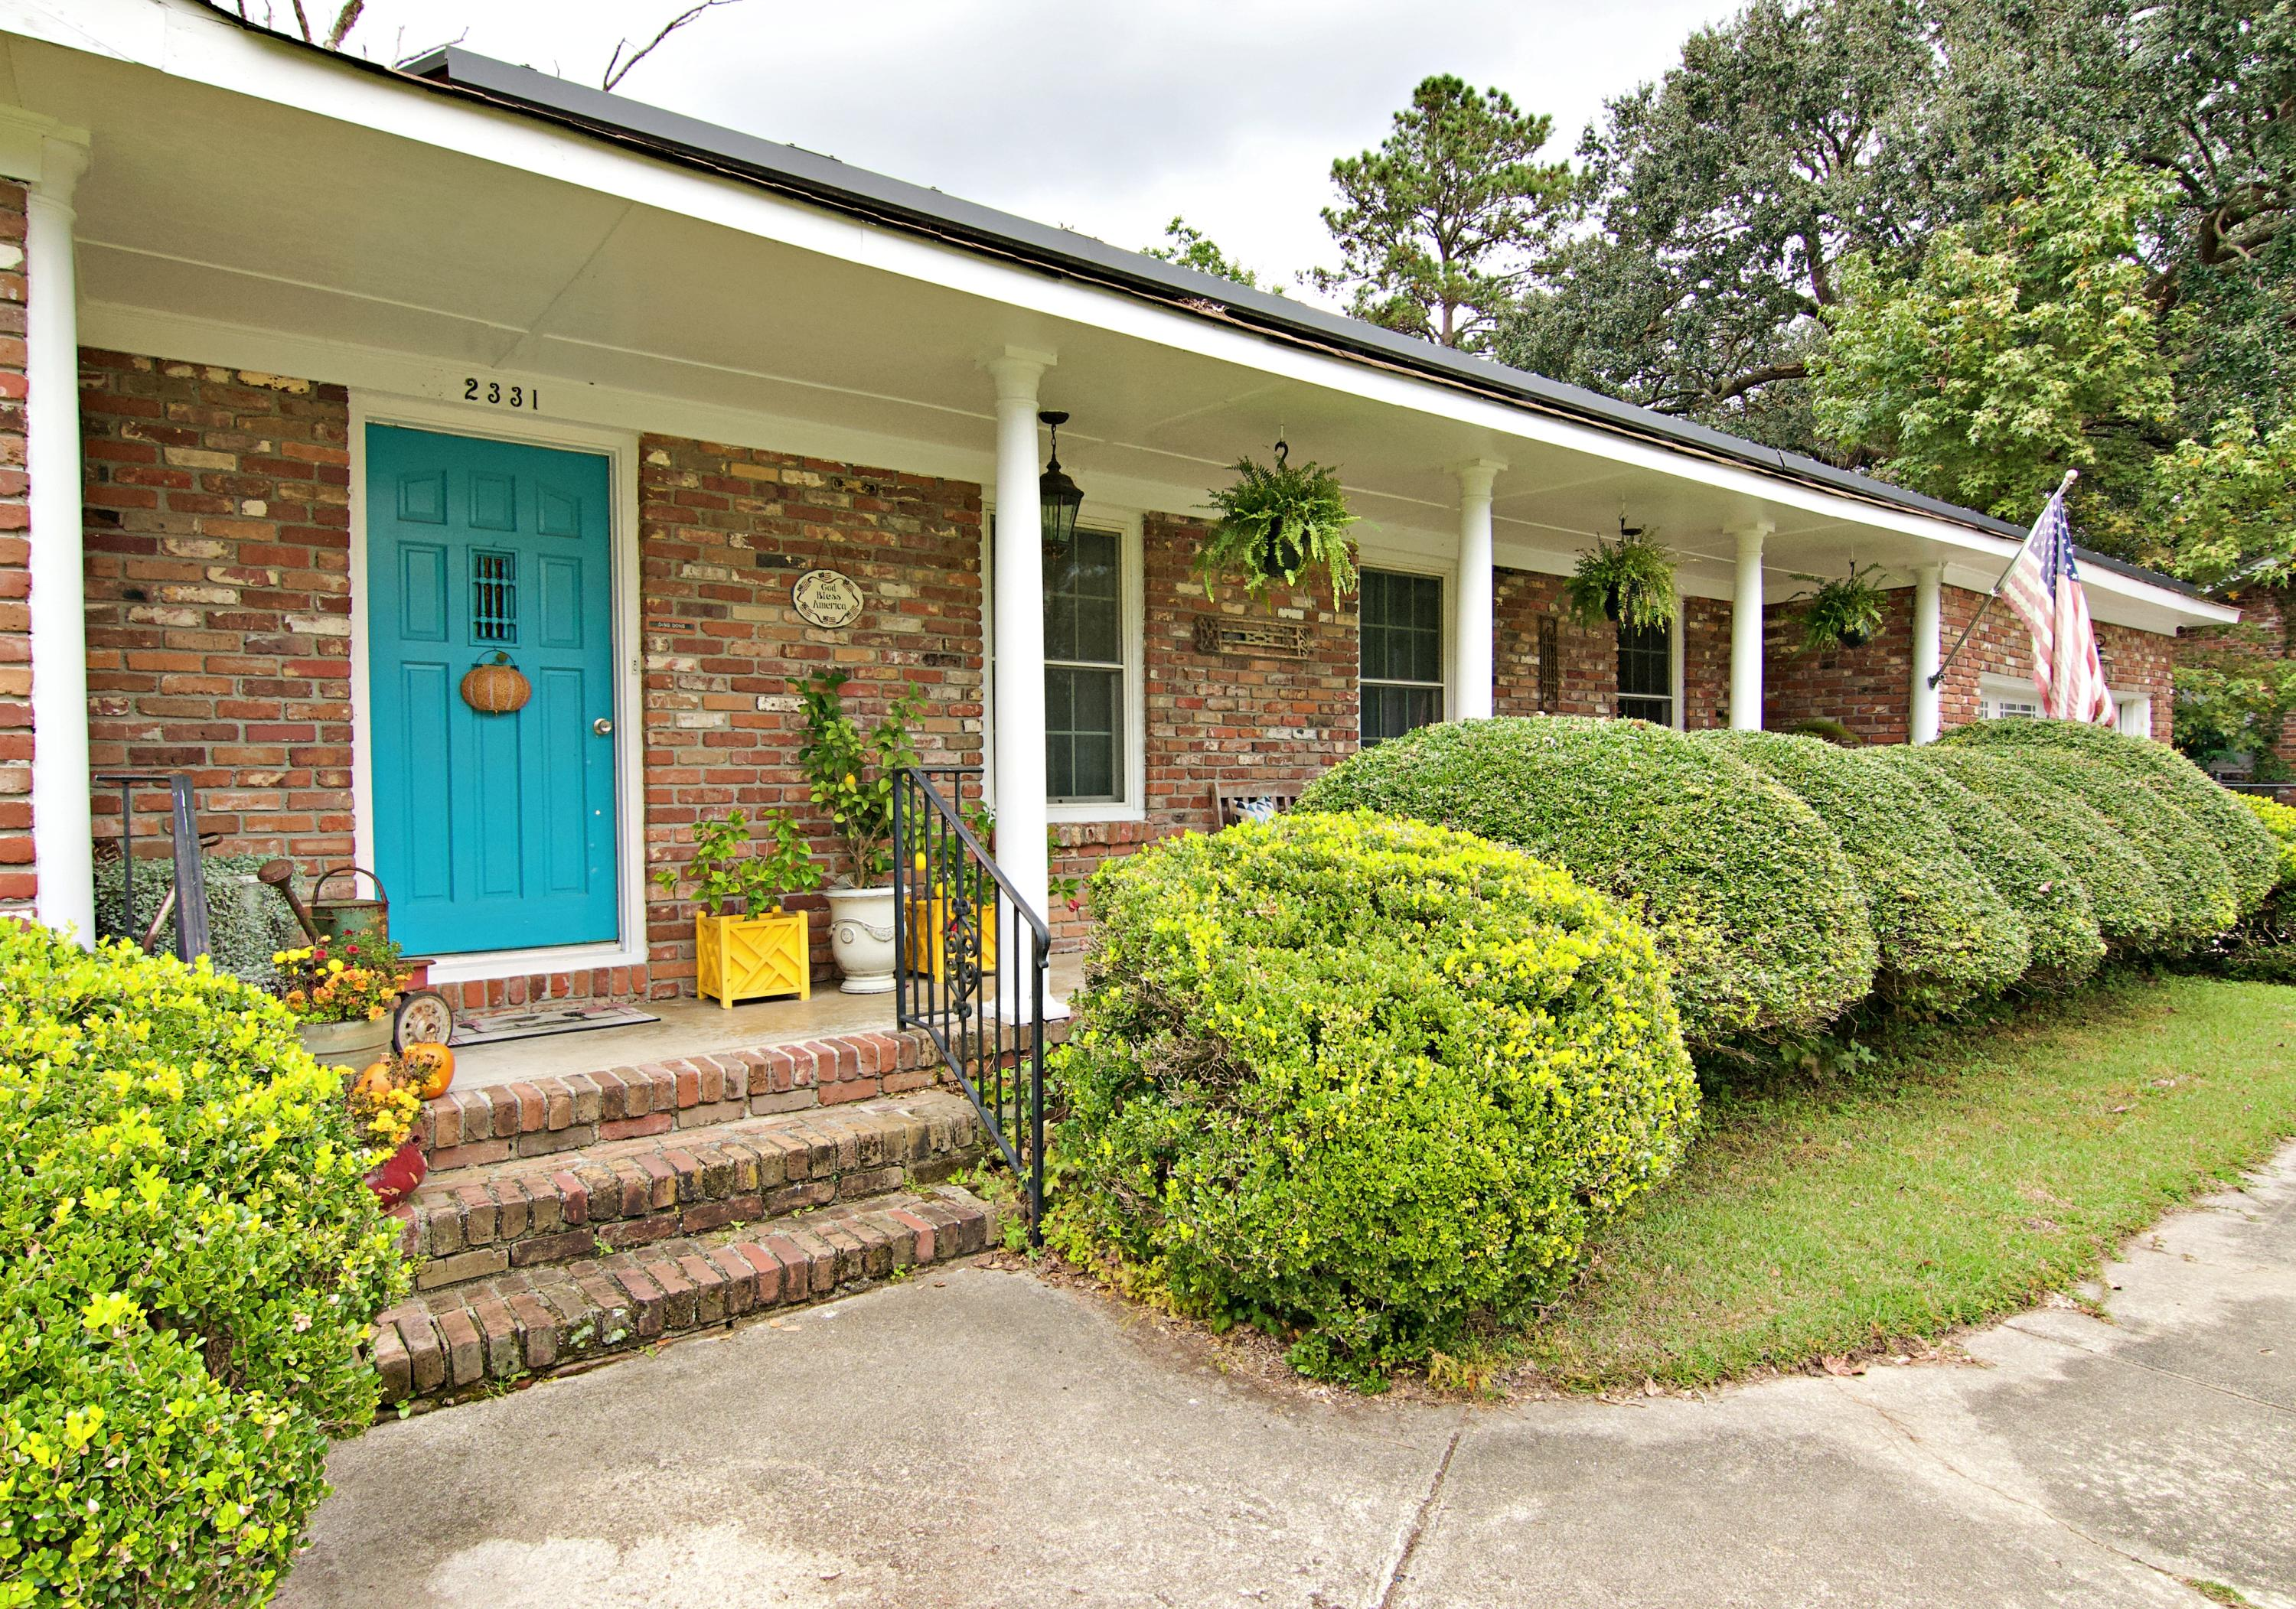 Drayton On The Ashley Homes For Sale - 2331 Wofford, Charleston, SC - 25